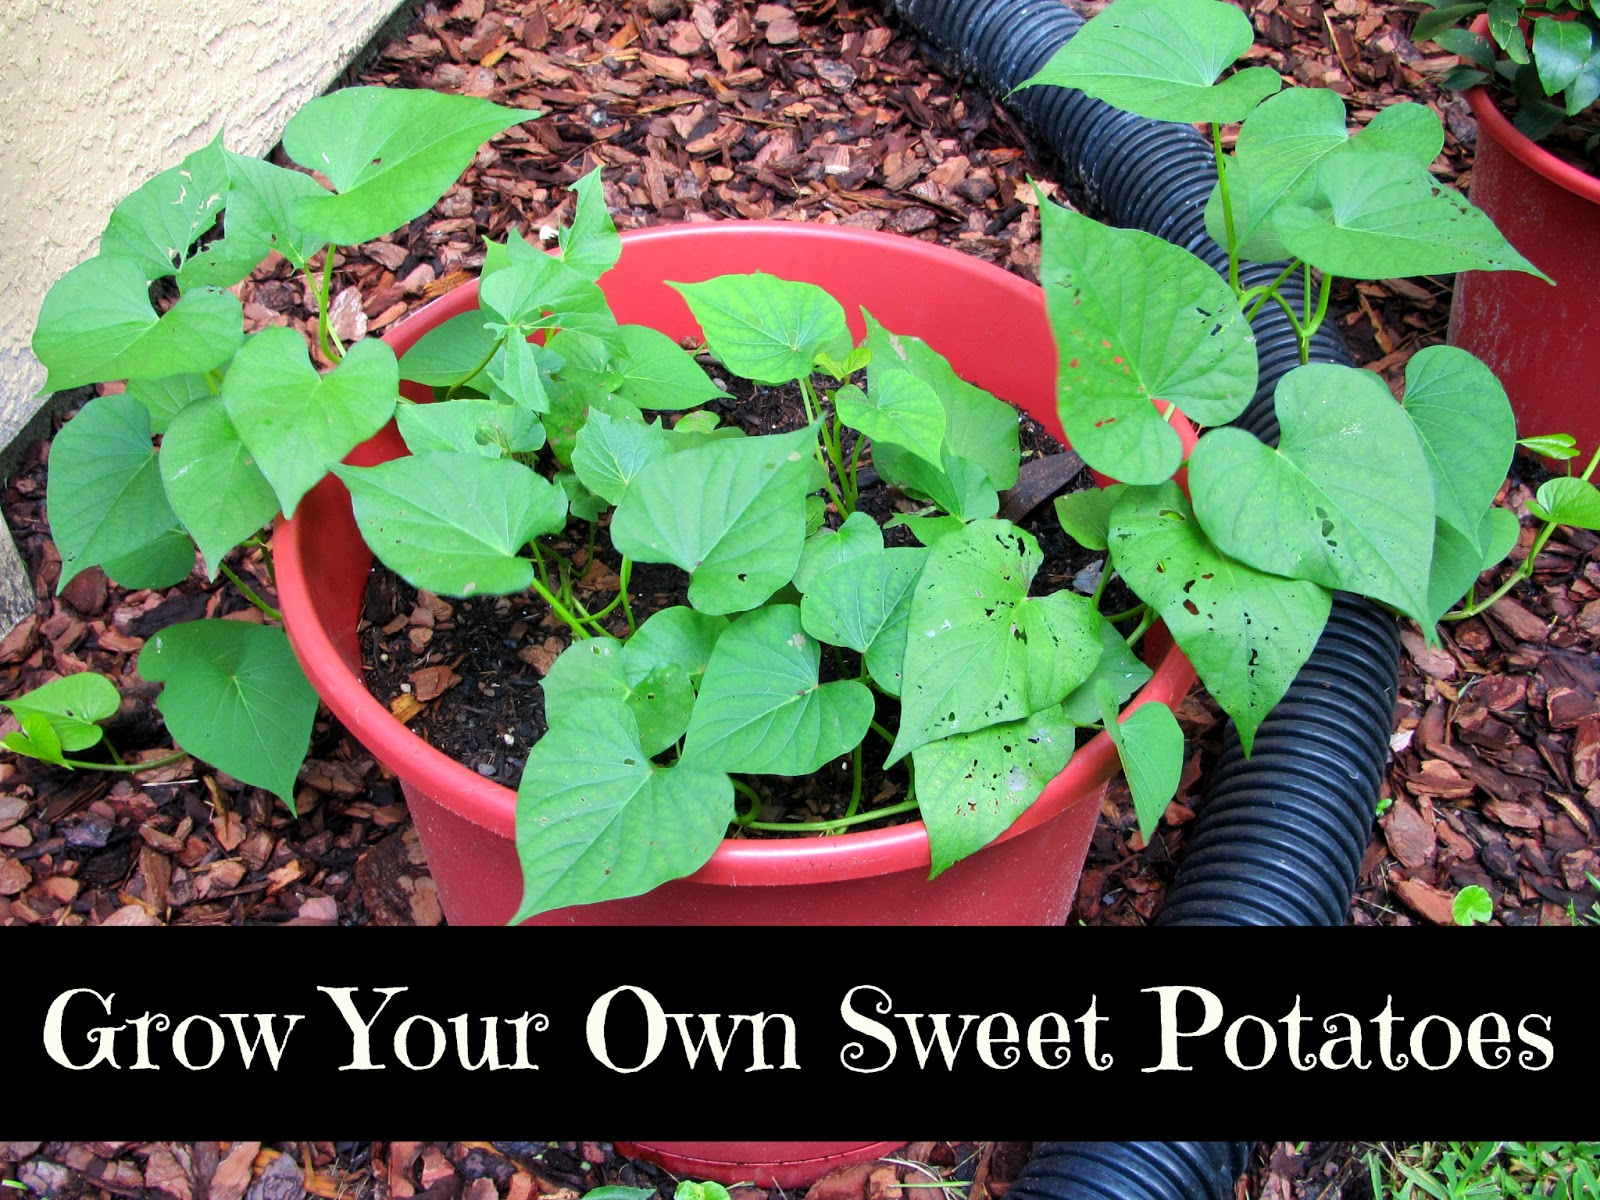 Grow Your Own Sweet Potatoes!